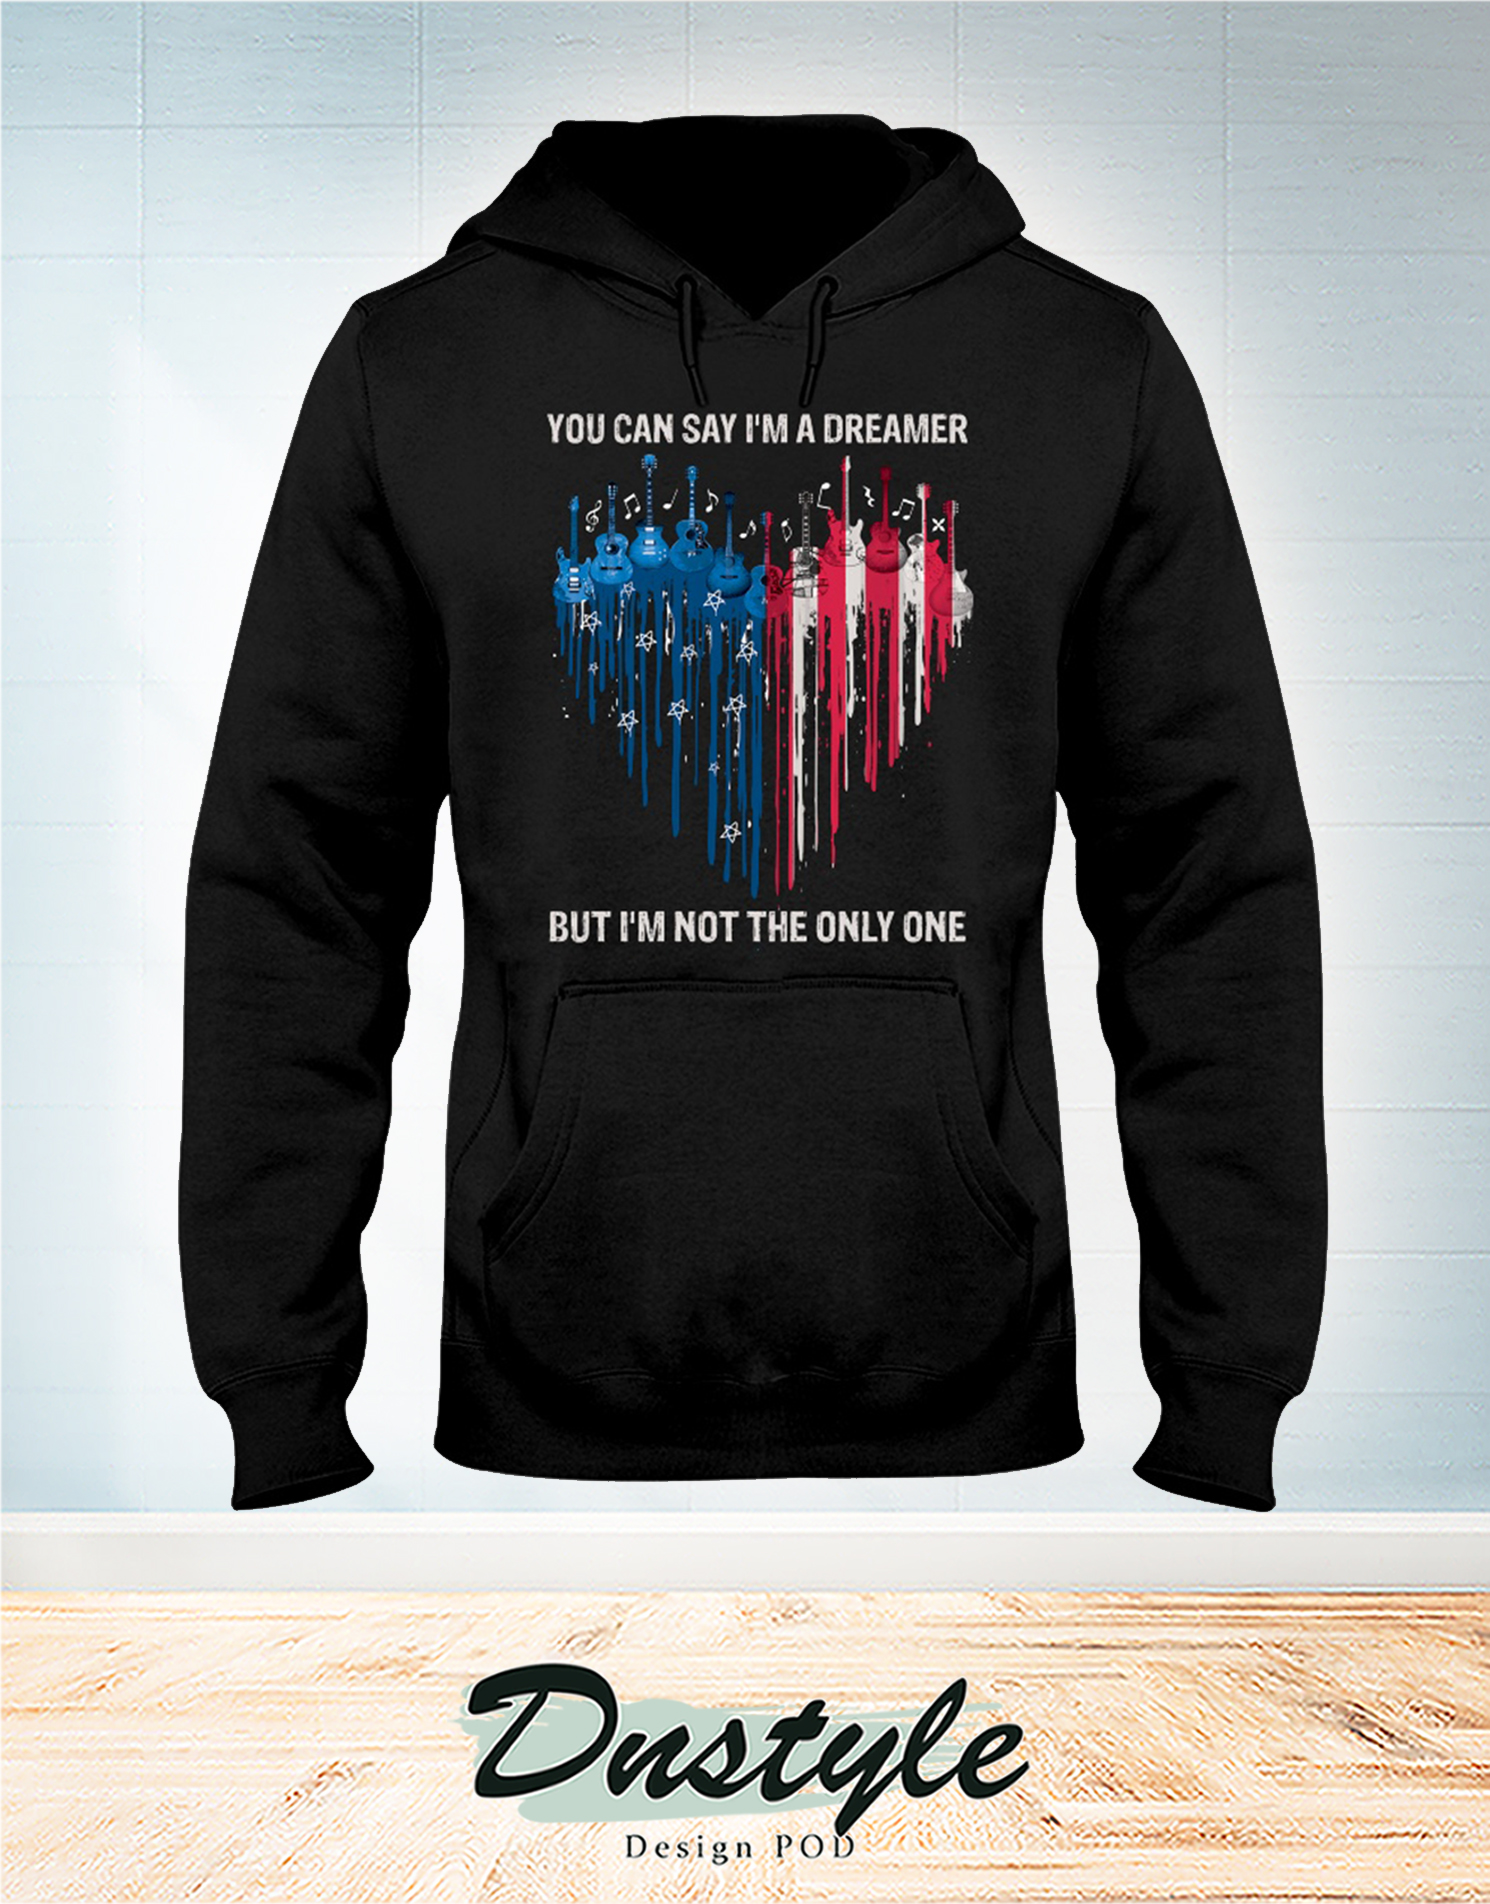 Guitar heart colors you can say I'm a dreamer independence day hoodie